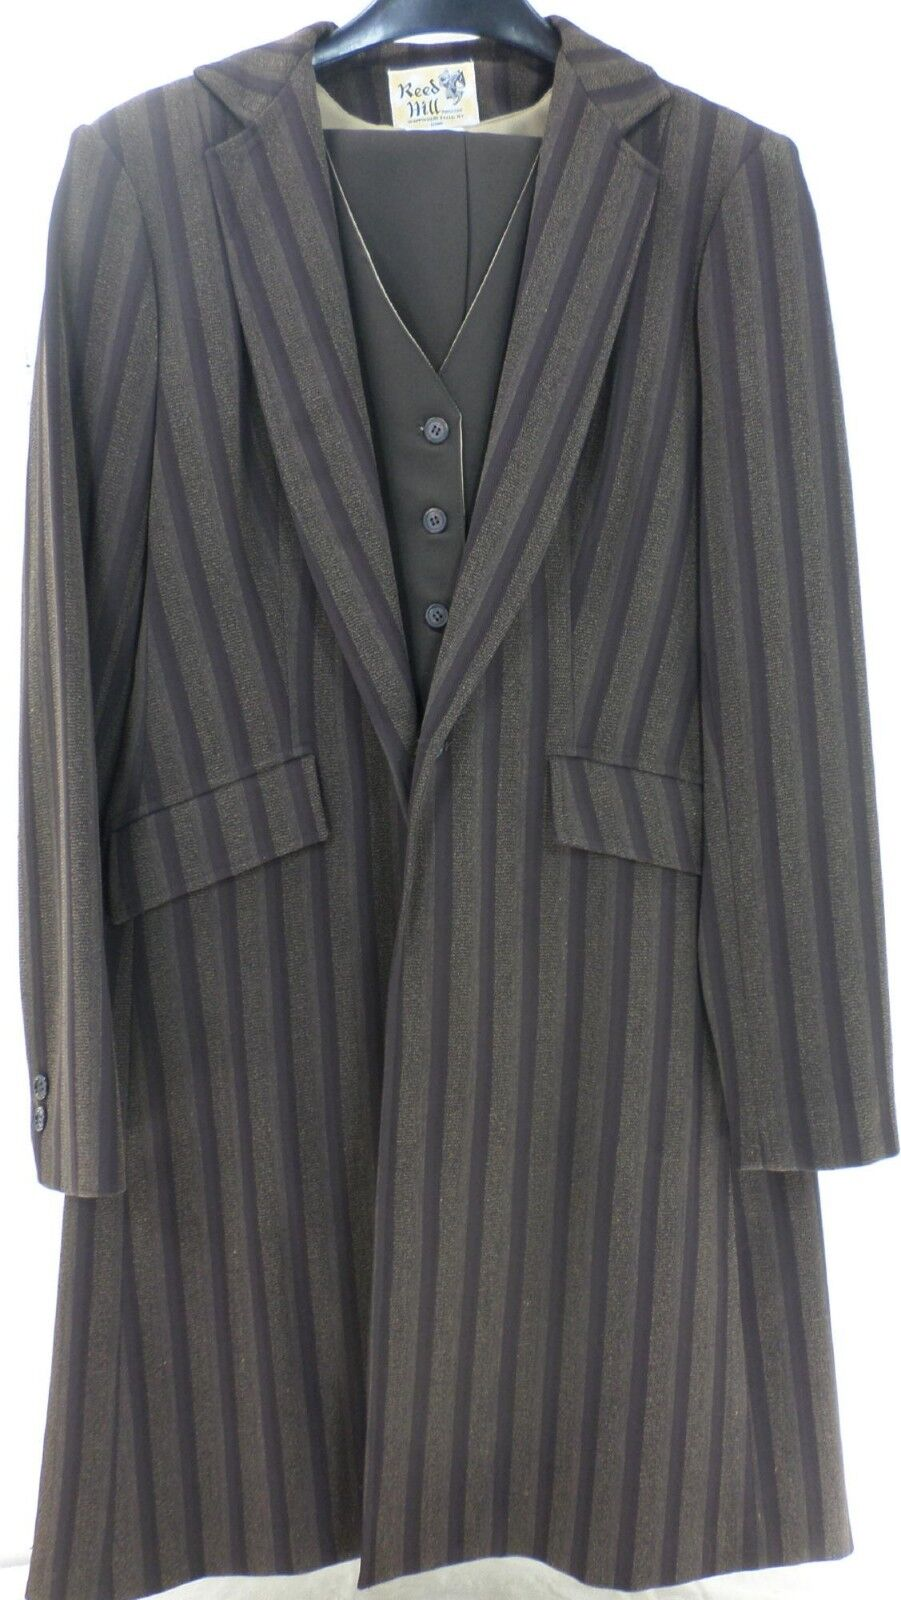 Reed Hill Saddleseat Ld 3p suit Brown Coordinate  poly size 8  - USA